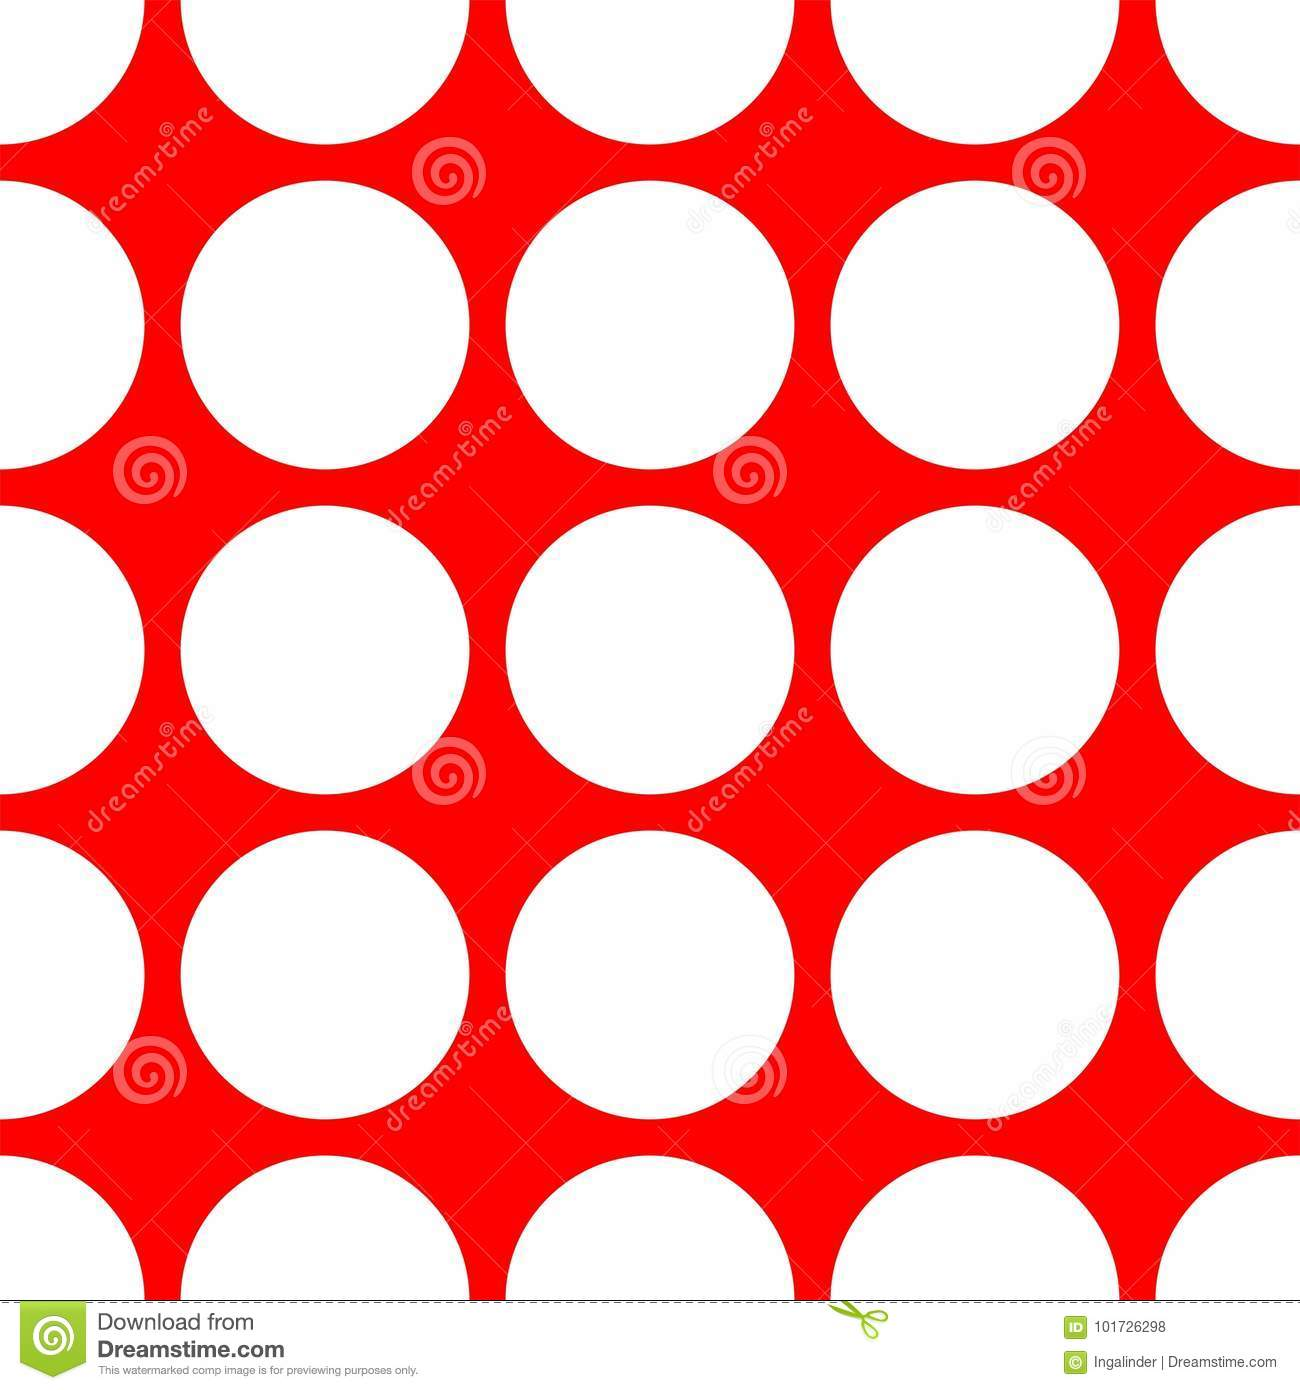 Tile Vector Pattern With White Polka Dots On Red Background For Decoration Wallpaper